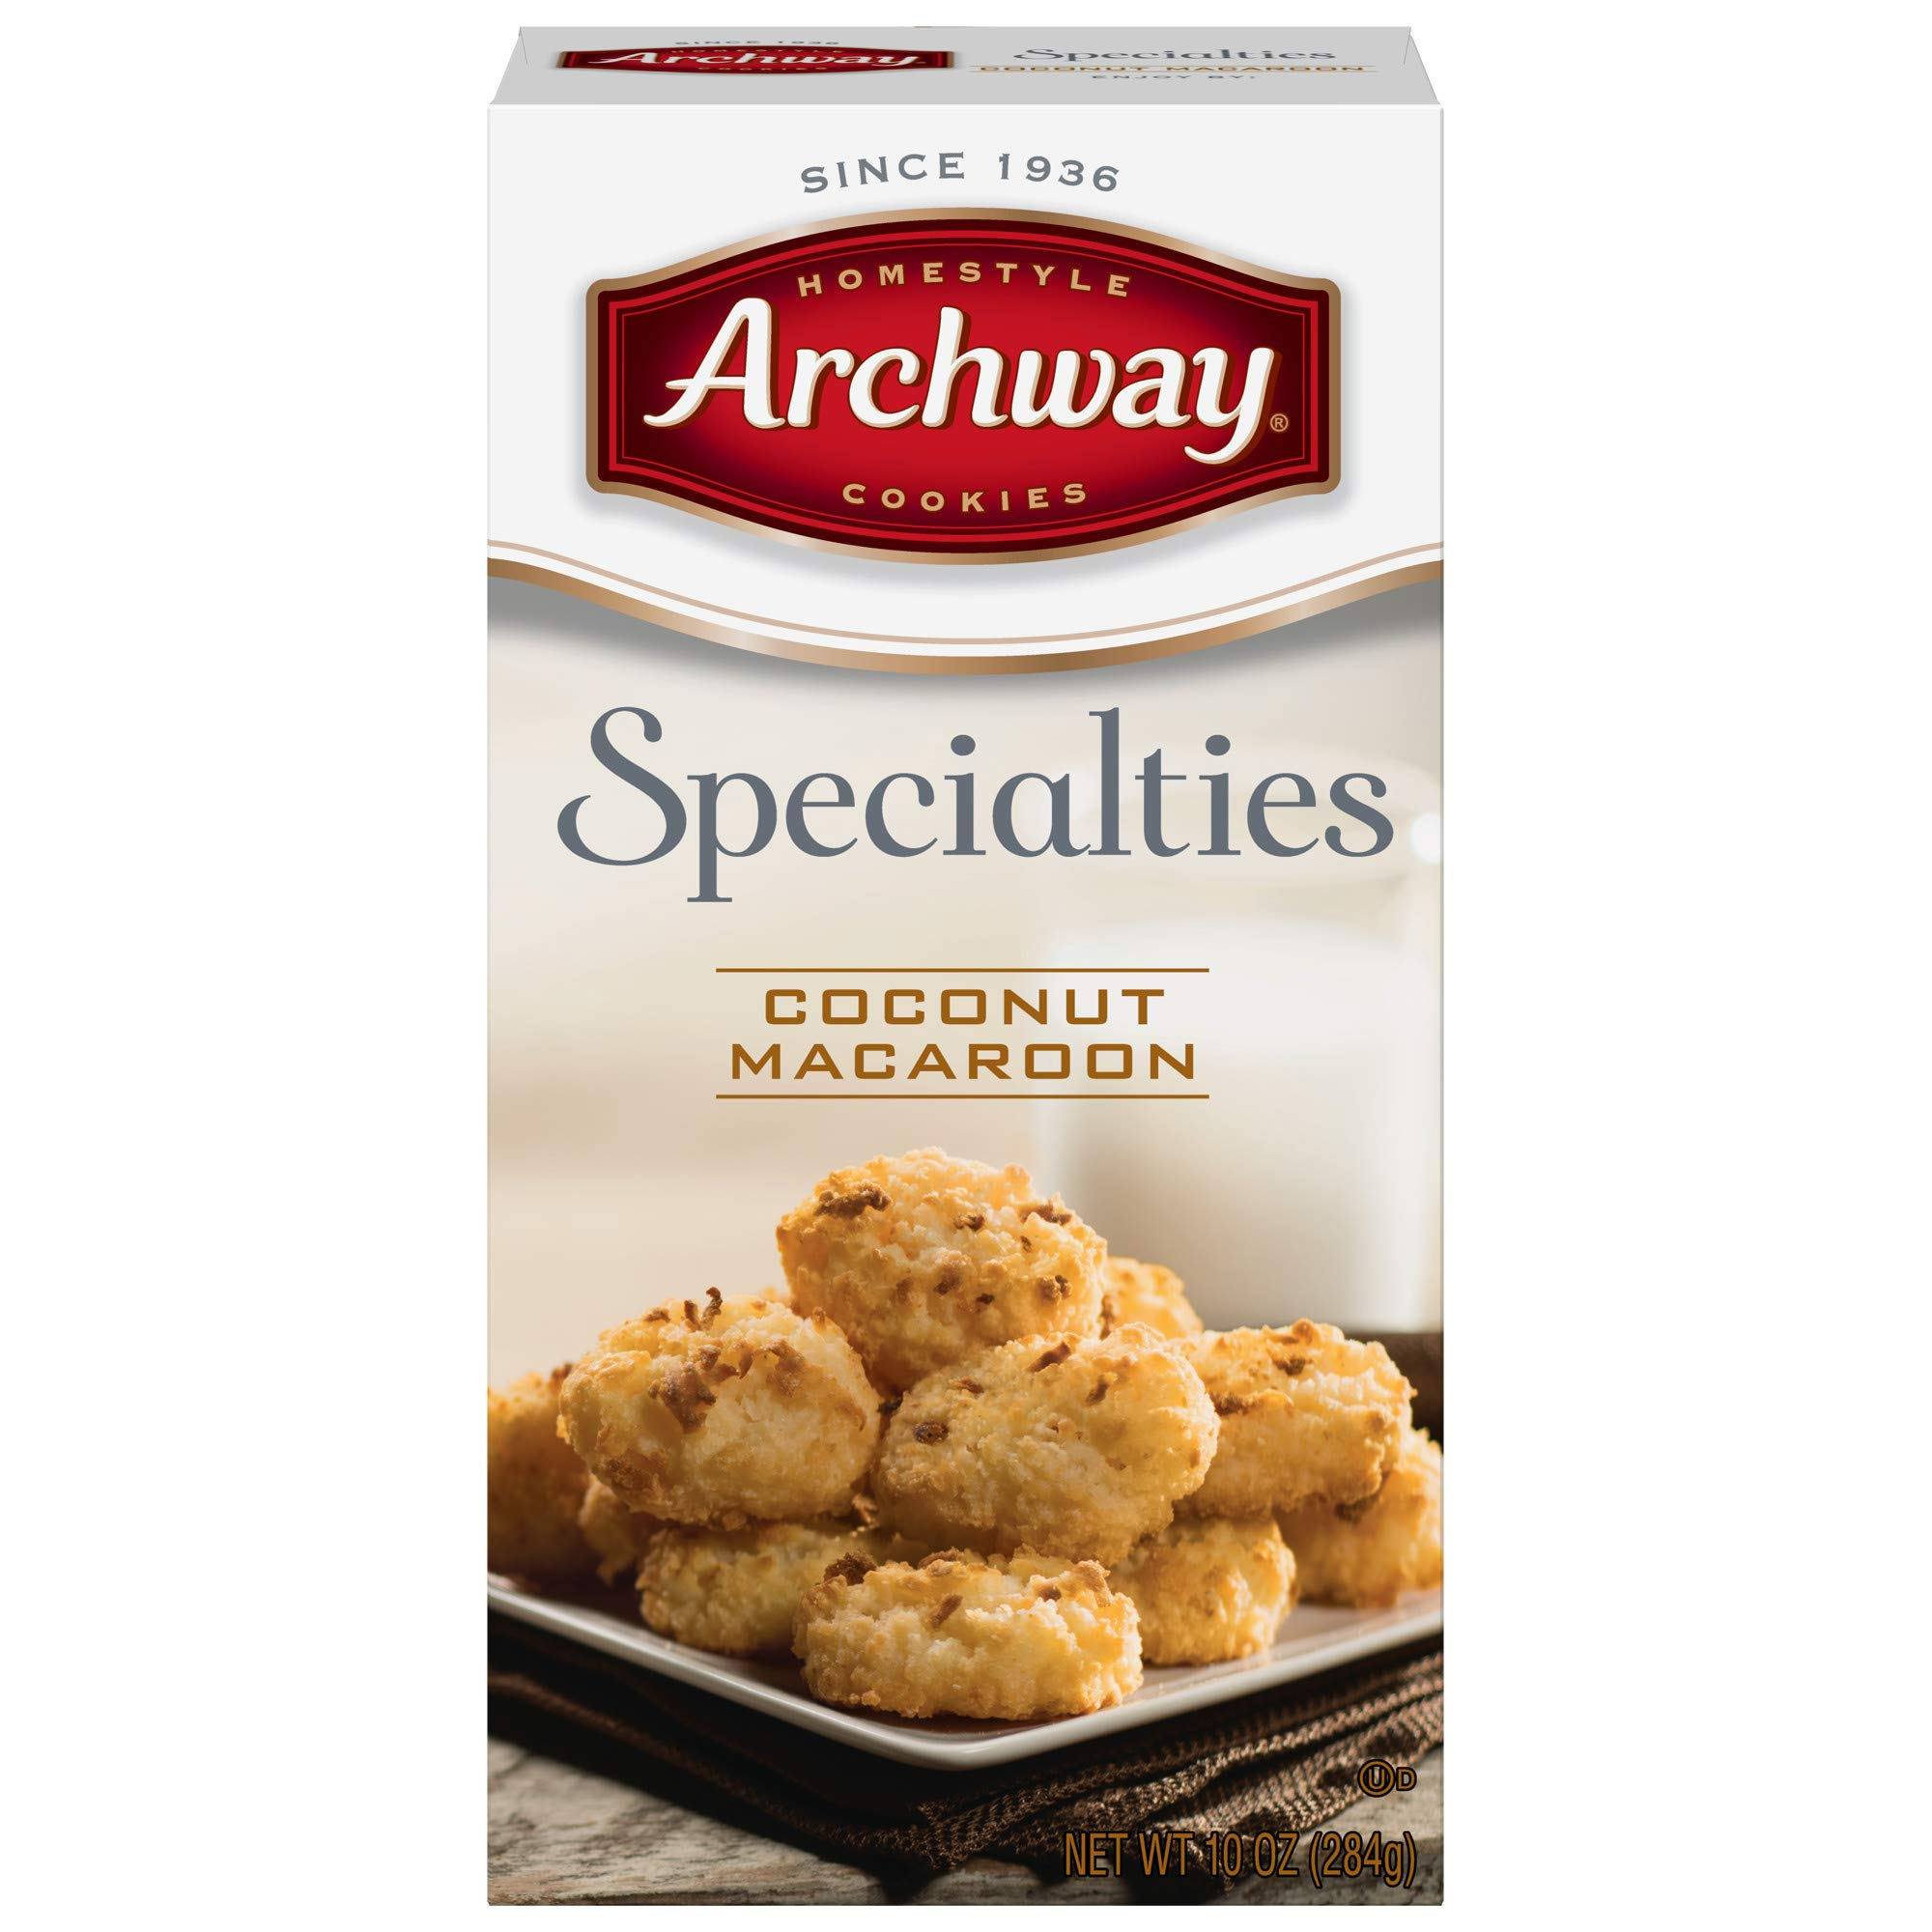 Archway Archway Original Coconut Macaroon Cookies, 10 Ounce